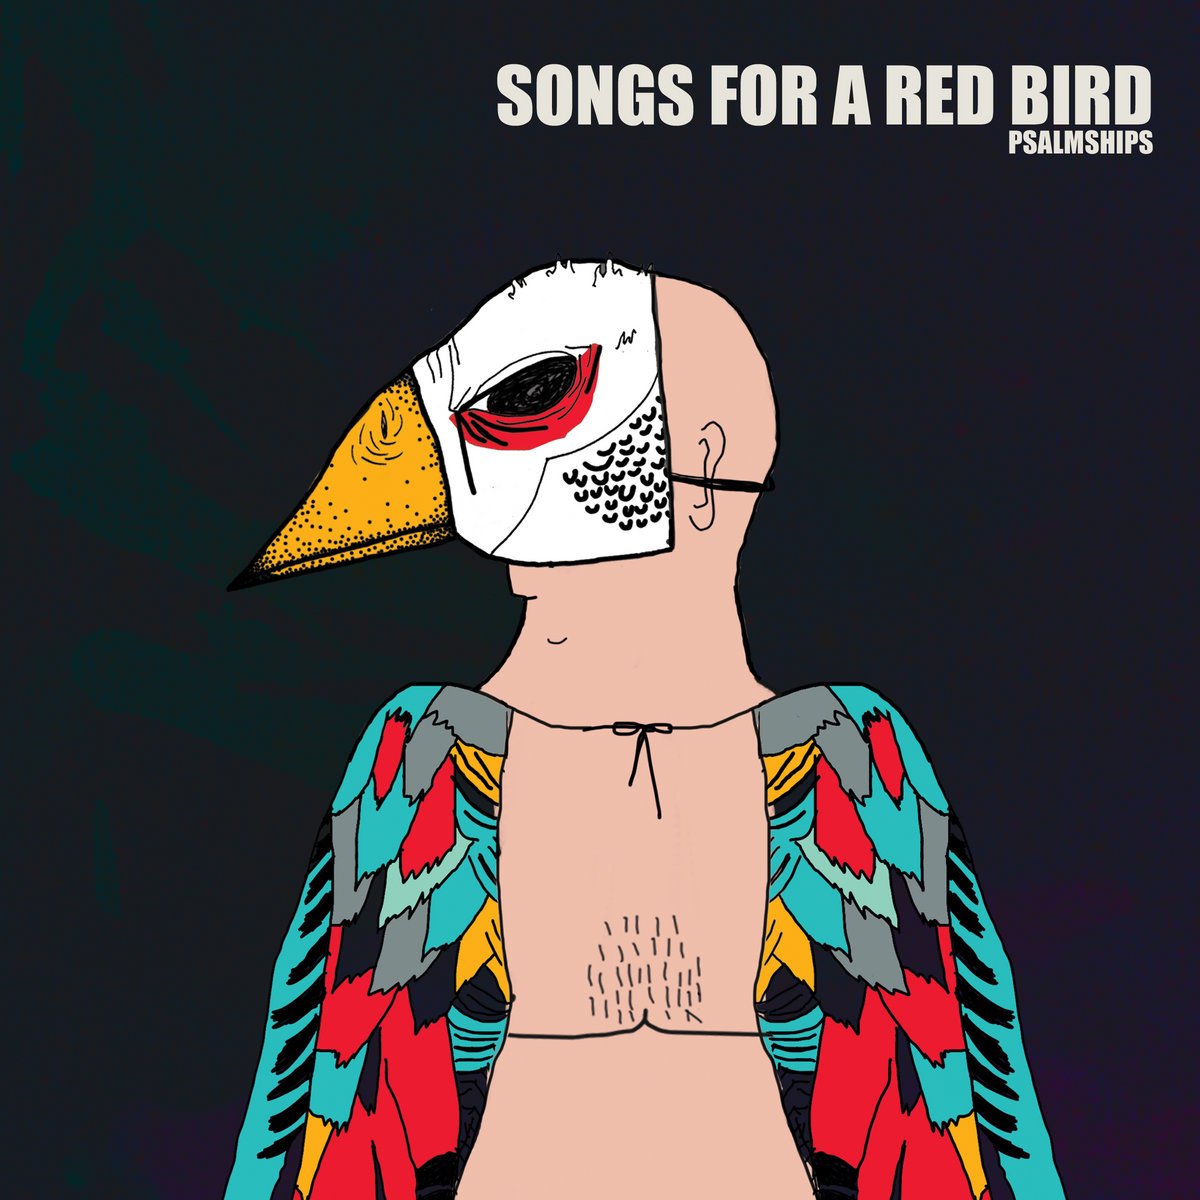 songs for a red bird